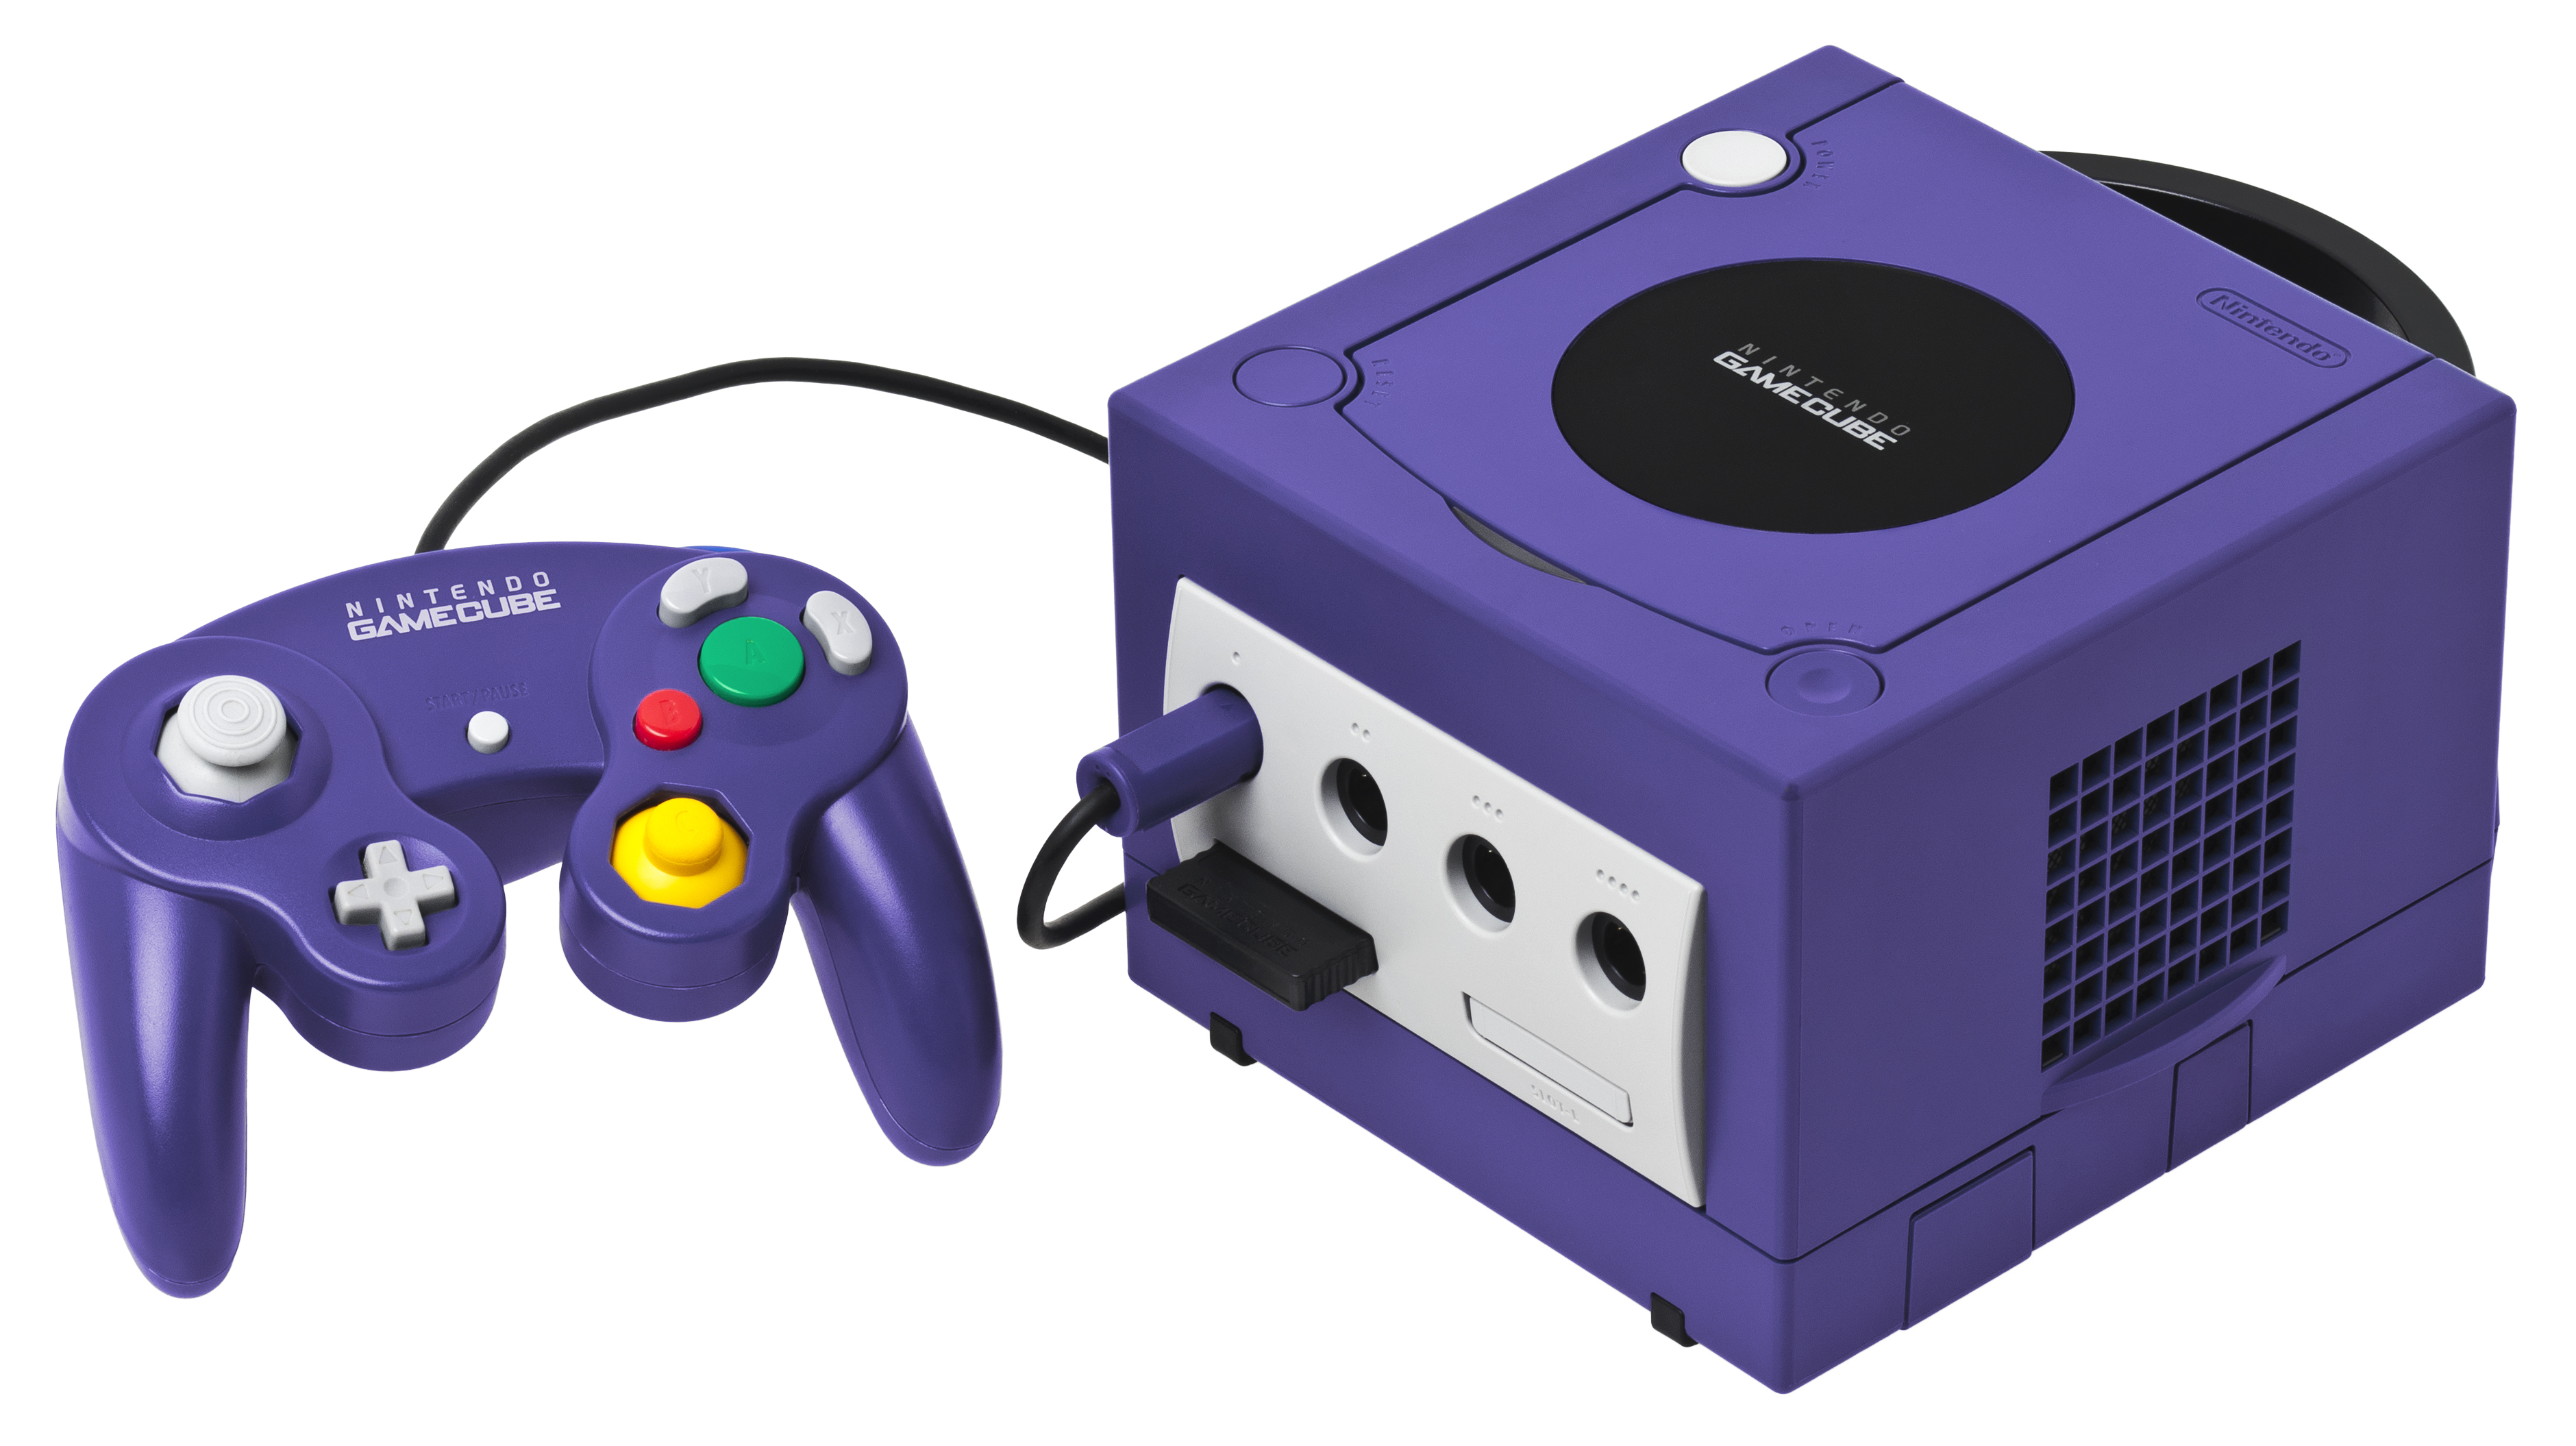 https://upload.wikimedia.org/wikipedia/commons/d/d1/GameCube-Set.jpg